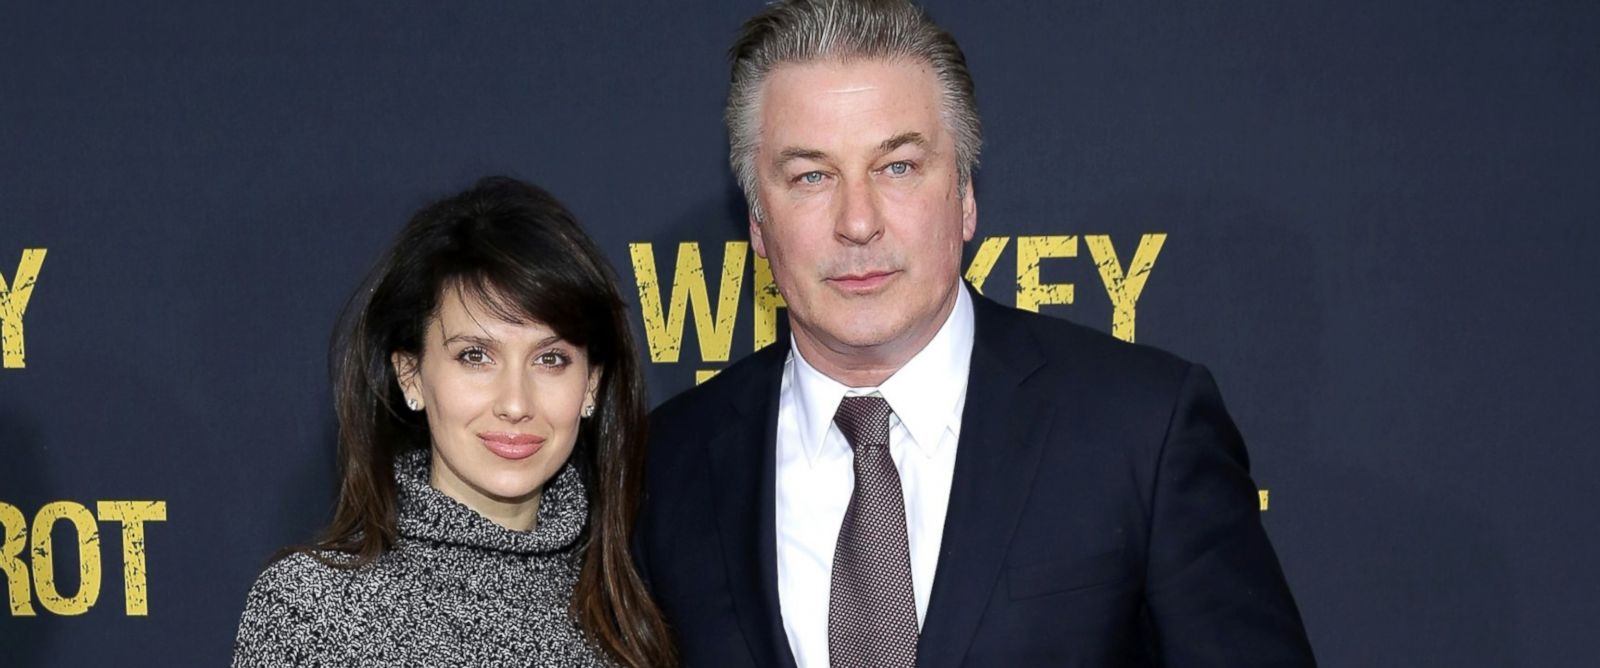 "PHOTO: Hilaria Thomas Baldwin and Alec Baldwin attend the World Premiere of the Paramount Pictures title ""Whiskey Tango Foxtrot"", March 1, 2016, in New York City."